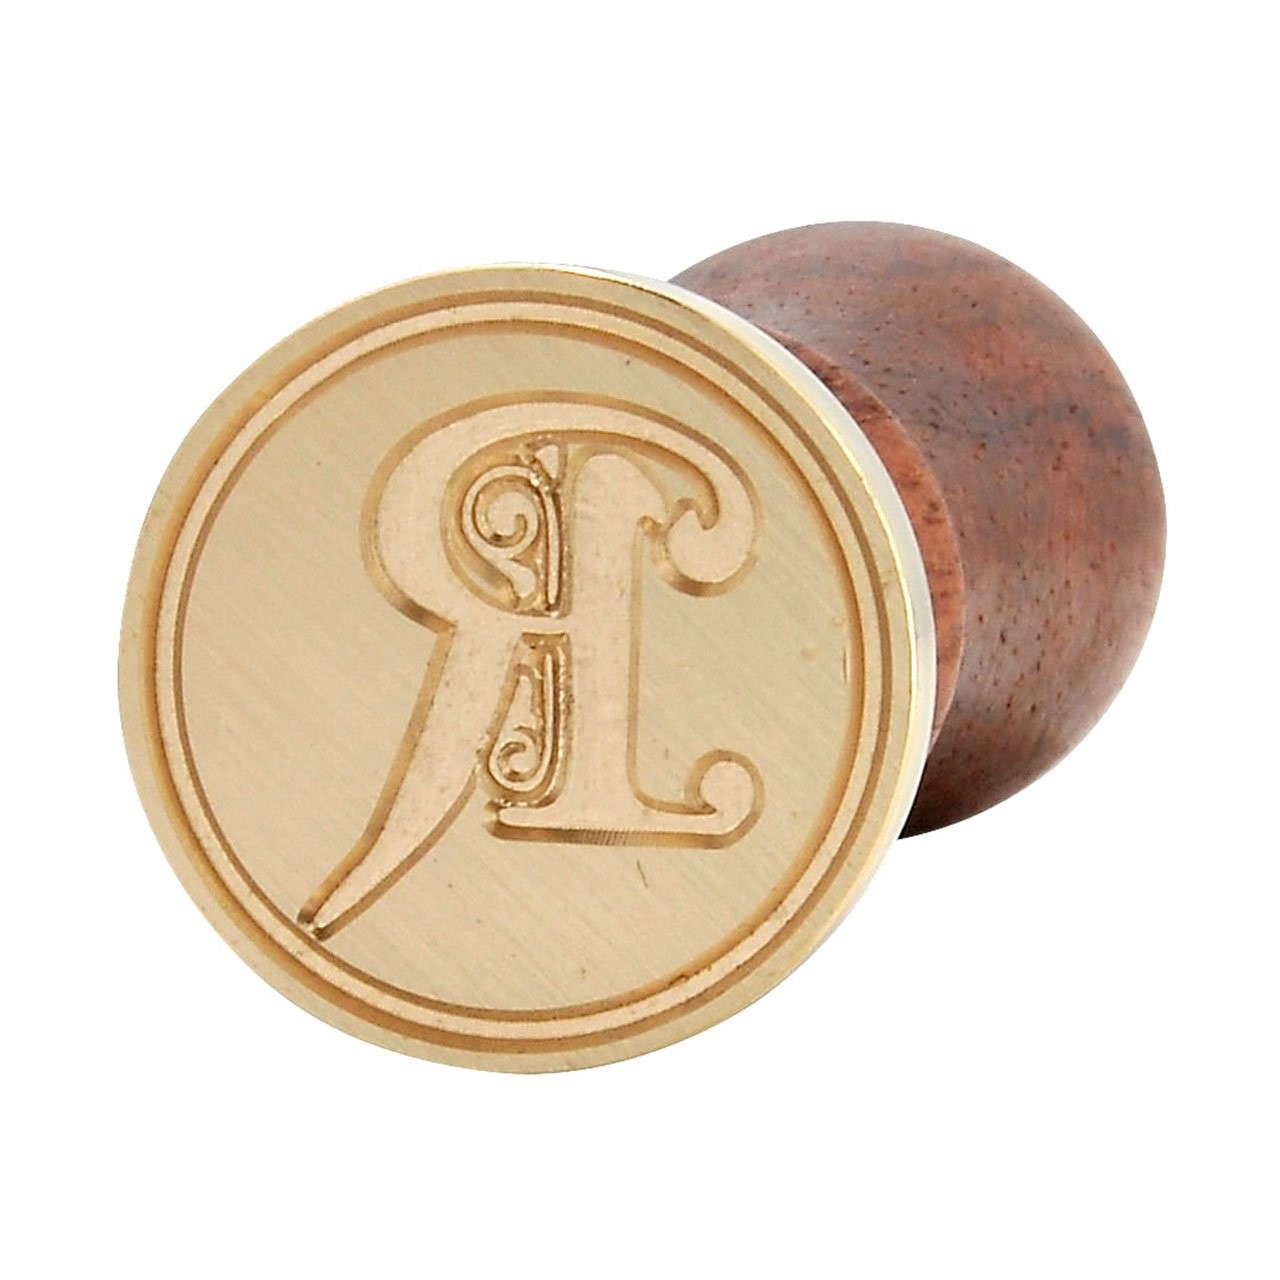 Seal Wax Stamp, Yoption Vintage Retro Brass Head Wooden Handle Gothic Font Letter Initial Sealing Wax Stamp Classic Wax Seal Stamp (R)